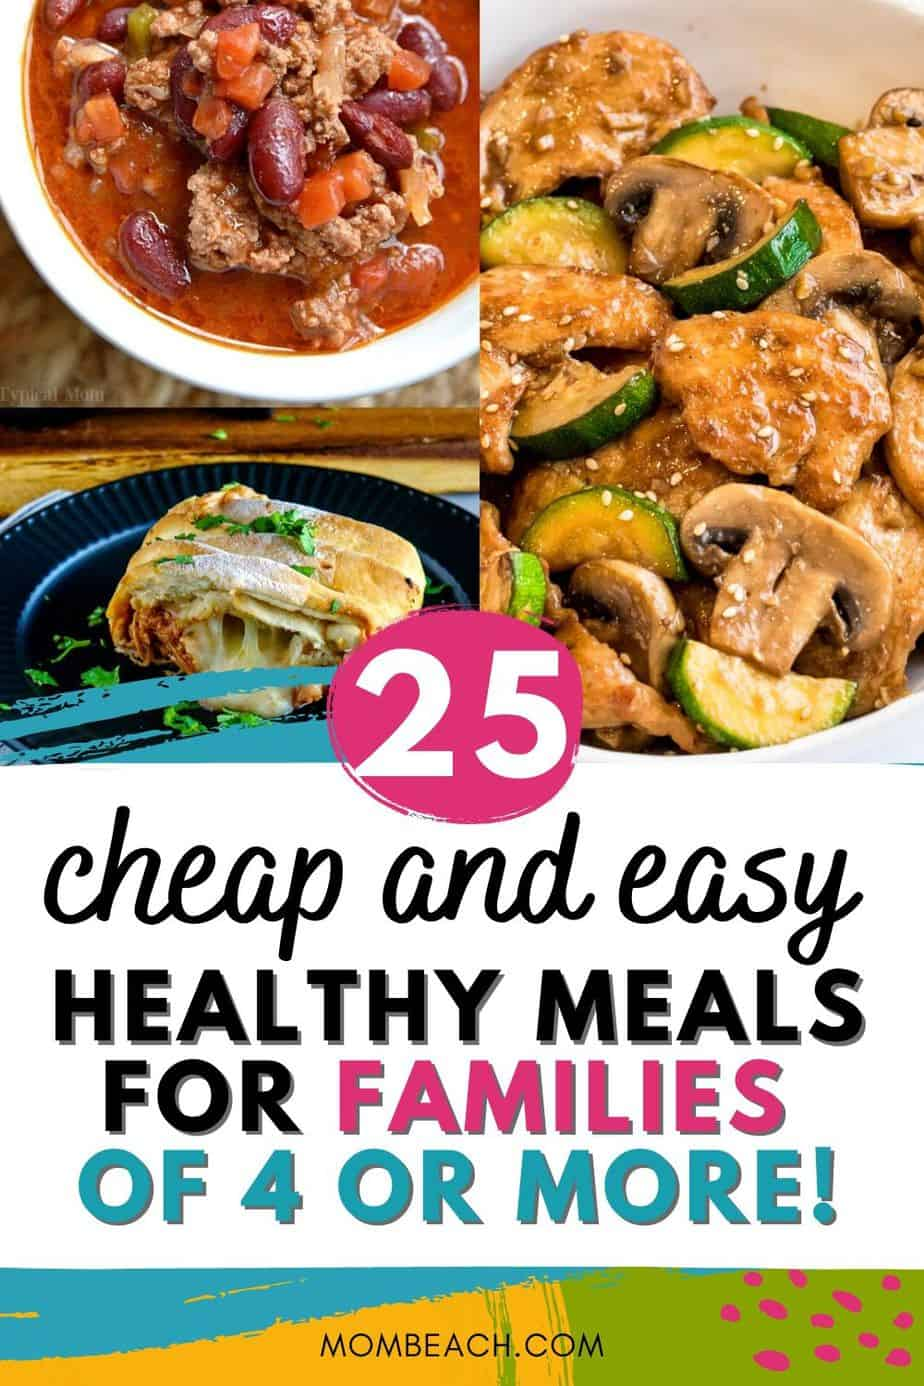 These 25 cheap and easy healthy meals for families are great for being on a budget. Lower your grocery budget and start clean eating with these dinners. It is so easy eat healthy and fresh instead of eating out. #cheapeasyhealthymeals #familycheapmeals #budgetmeals #cheapeasymeals #cheapeasyrecipes #cleaneating #healthyrecipes